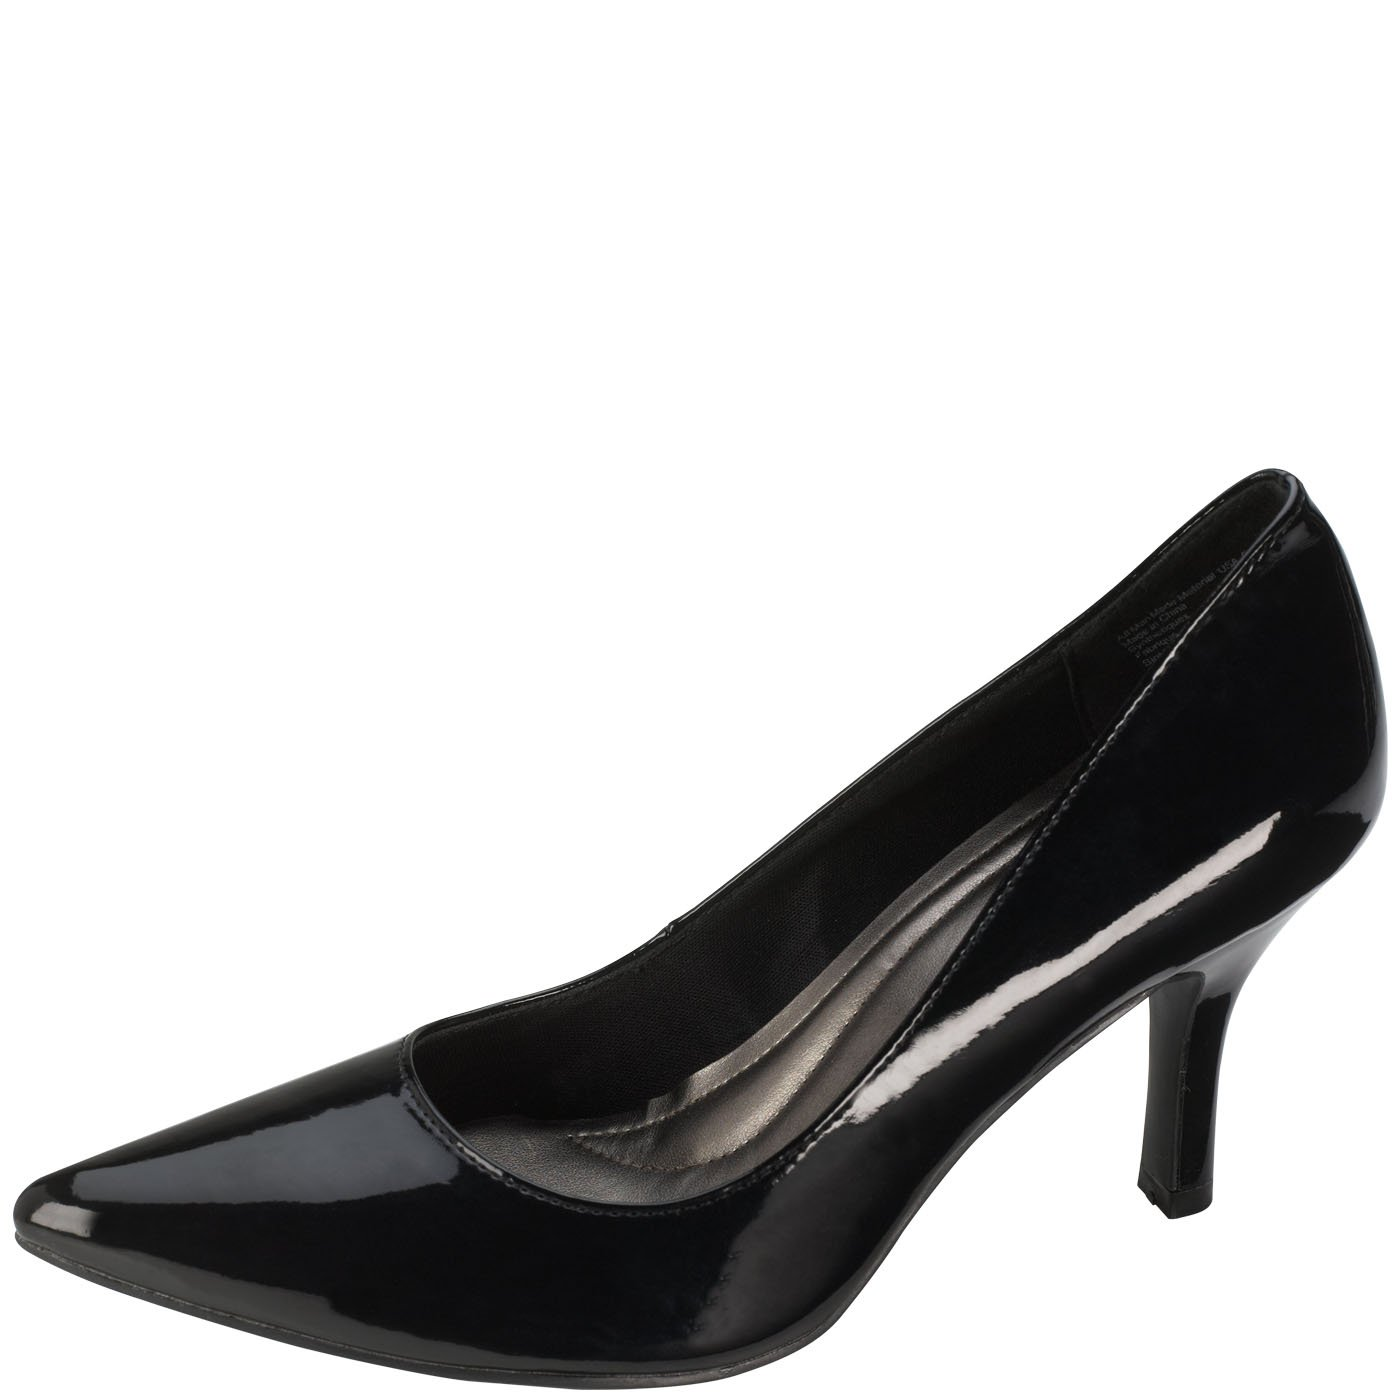 Predictions Comfort Plus Women's Black Patent Janine Pointy Toe Pump 8.5 Wide